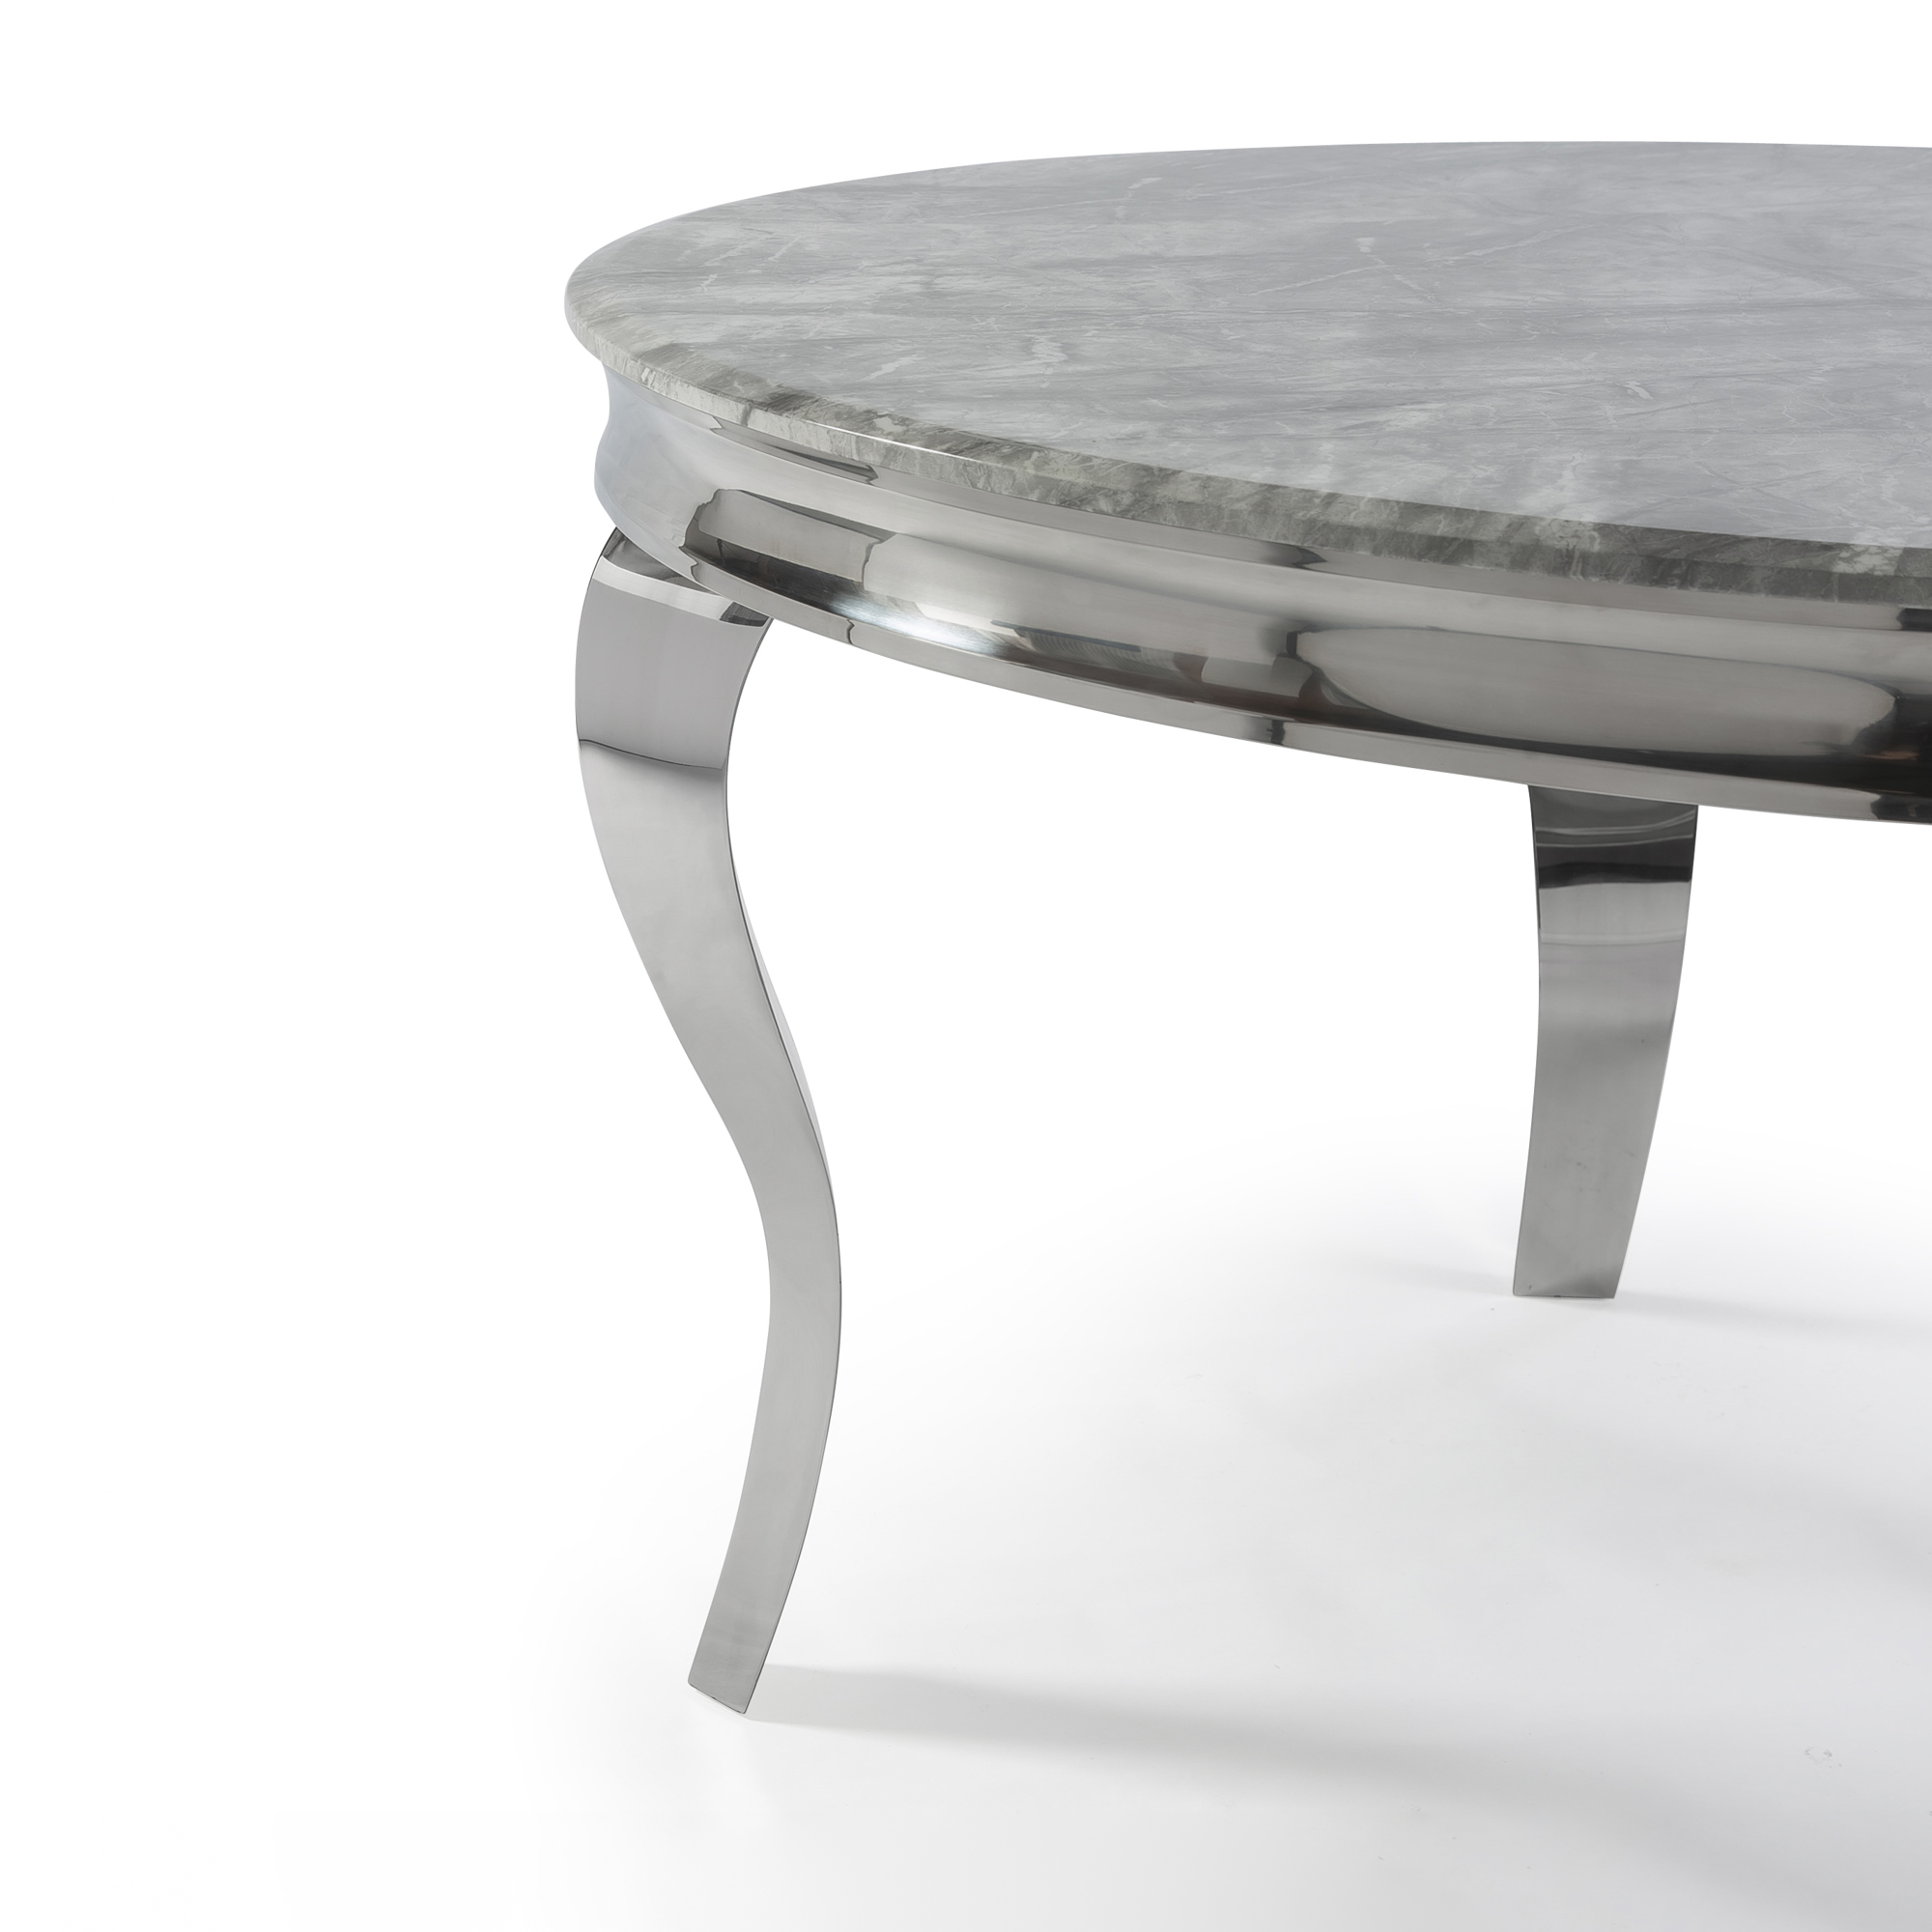 1.3m Circular Louis Polished Steel Dining Grey Marble Table Set with 4 Knightsbridge Grey Brushed Velvet Dining Chair – Buttoned